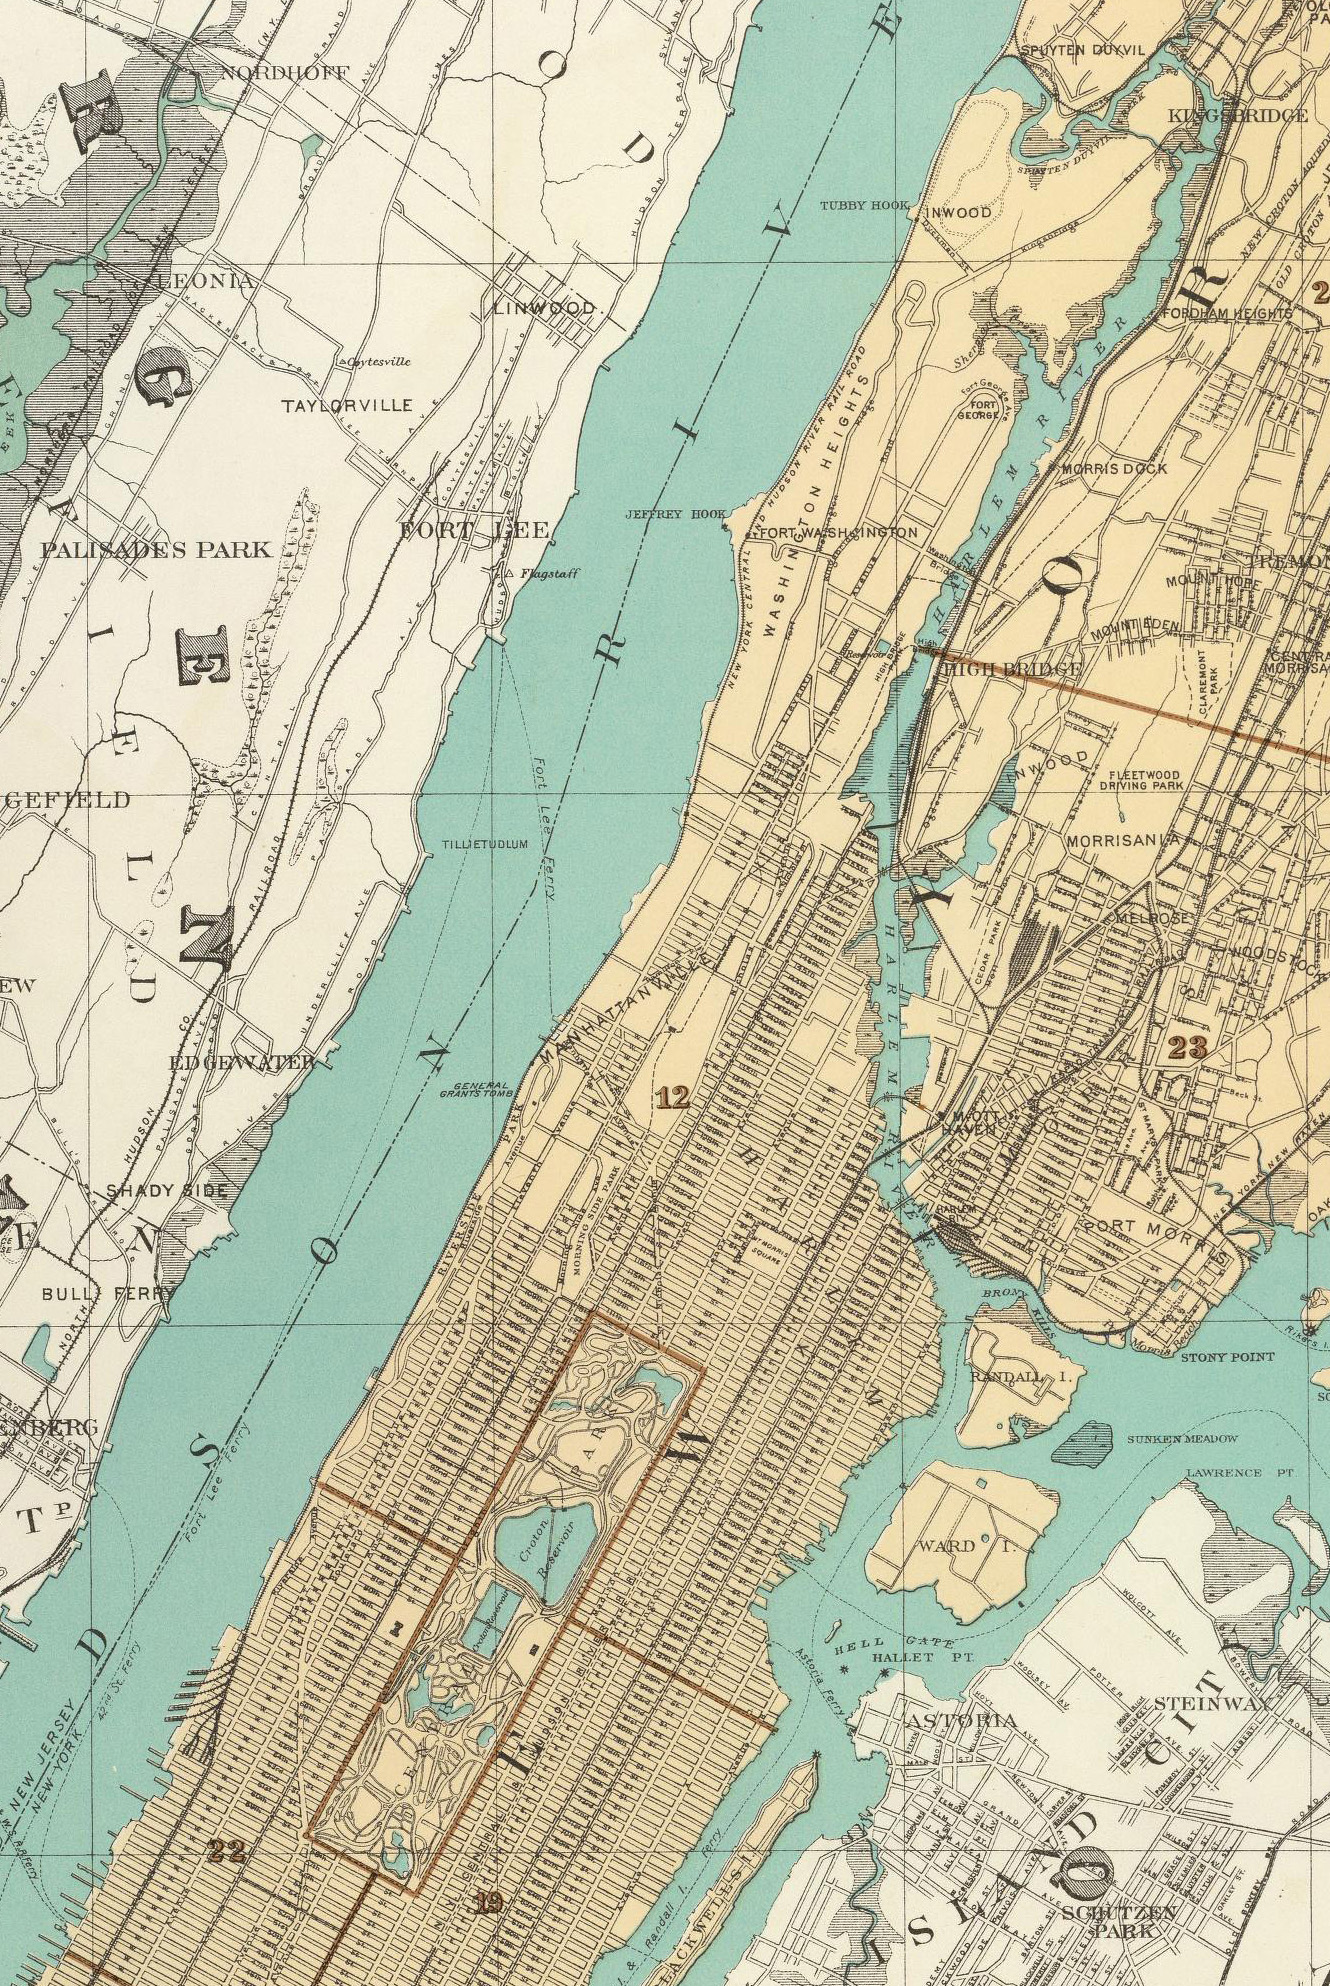 Historical Cities-New York City Central Park to Harlem is now ... on